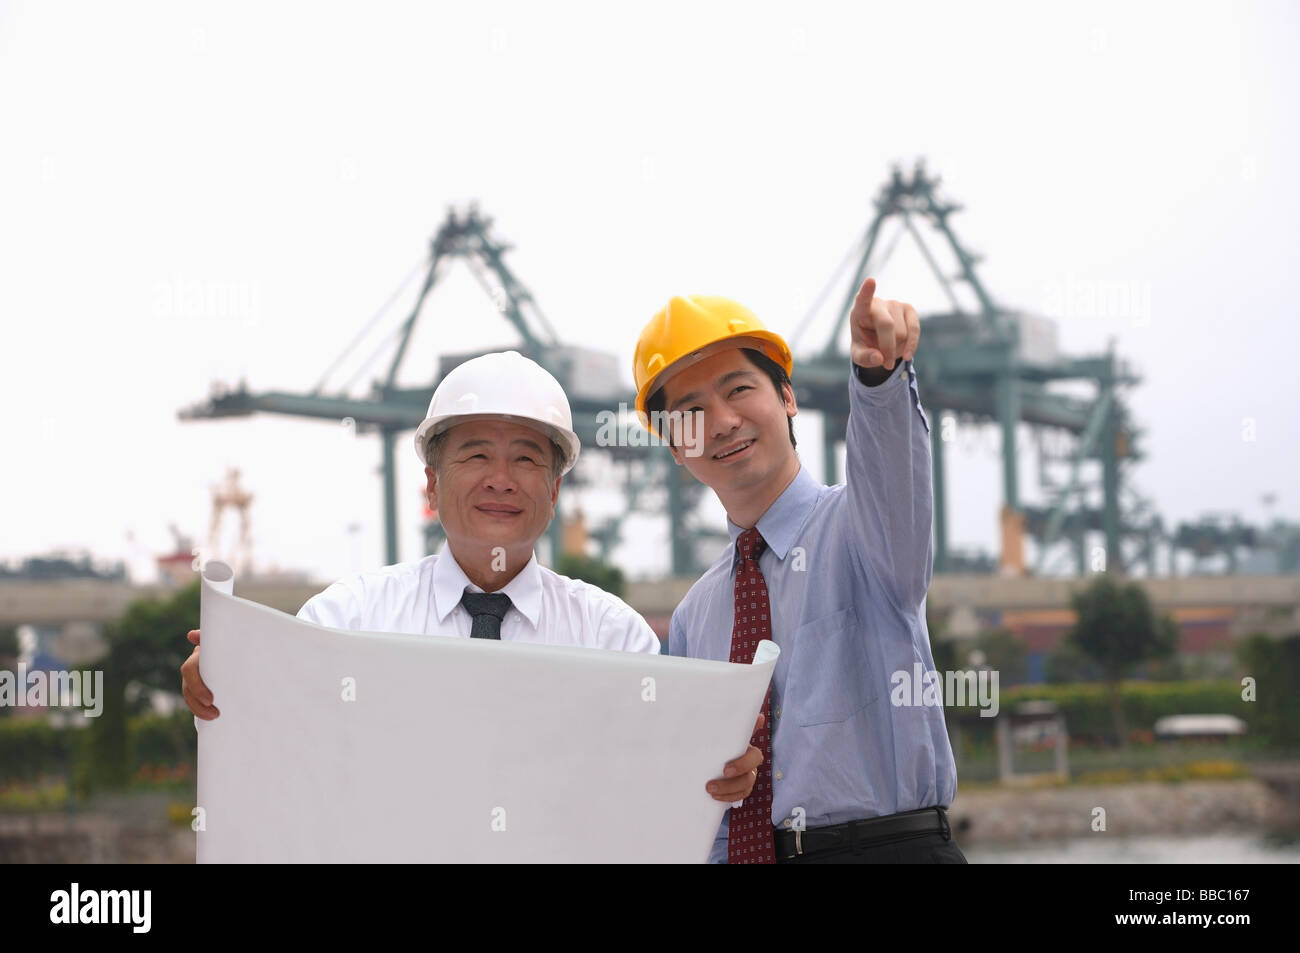 Men with helmets and blueprints - Stock Image